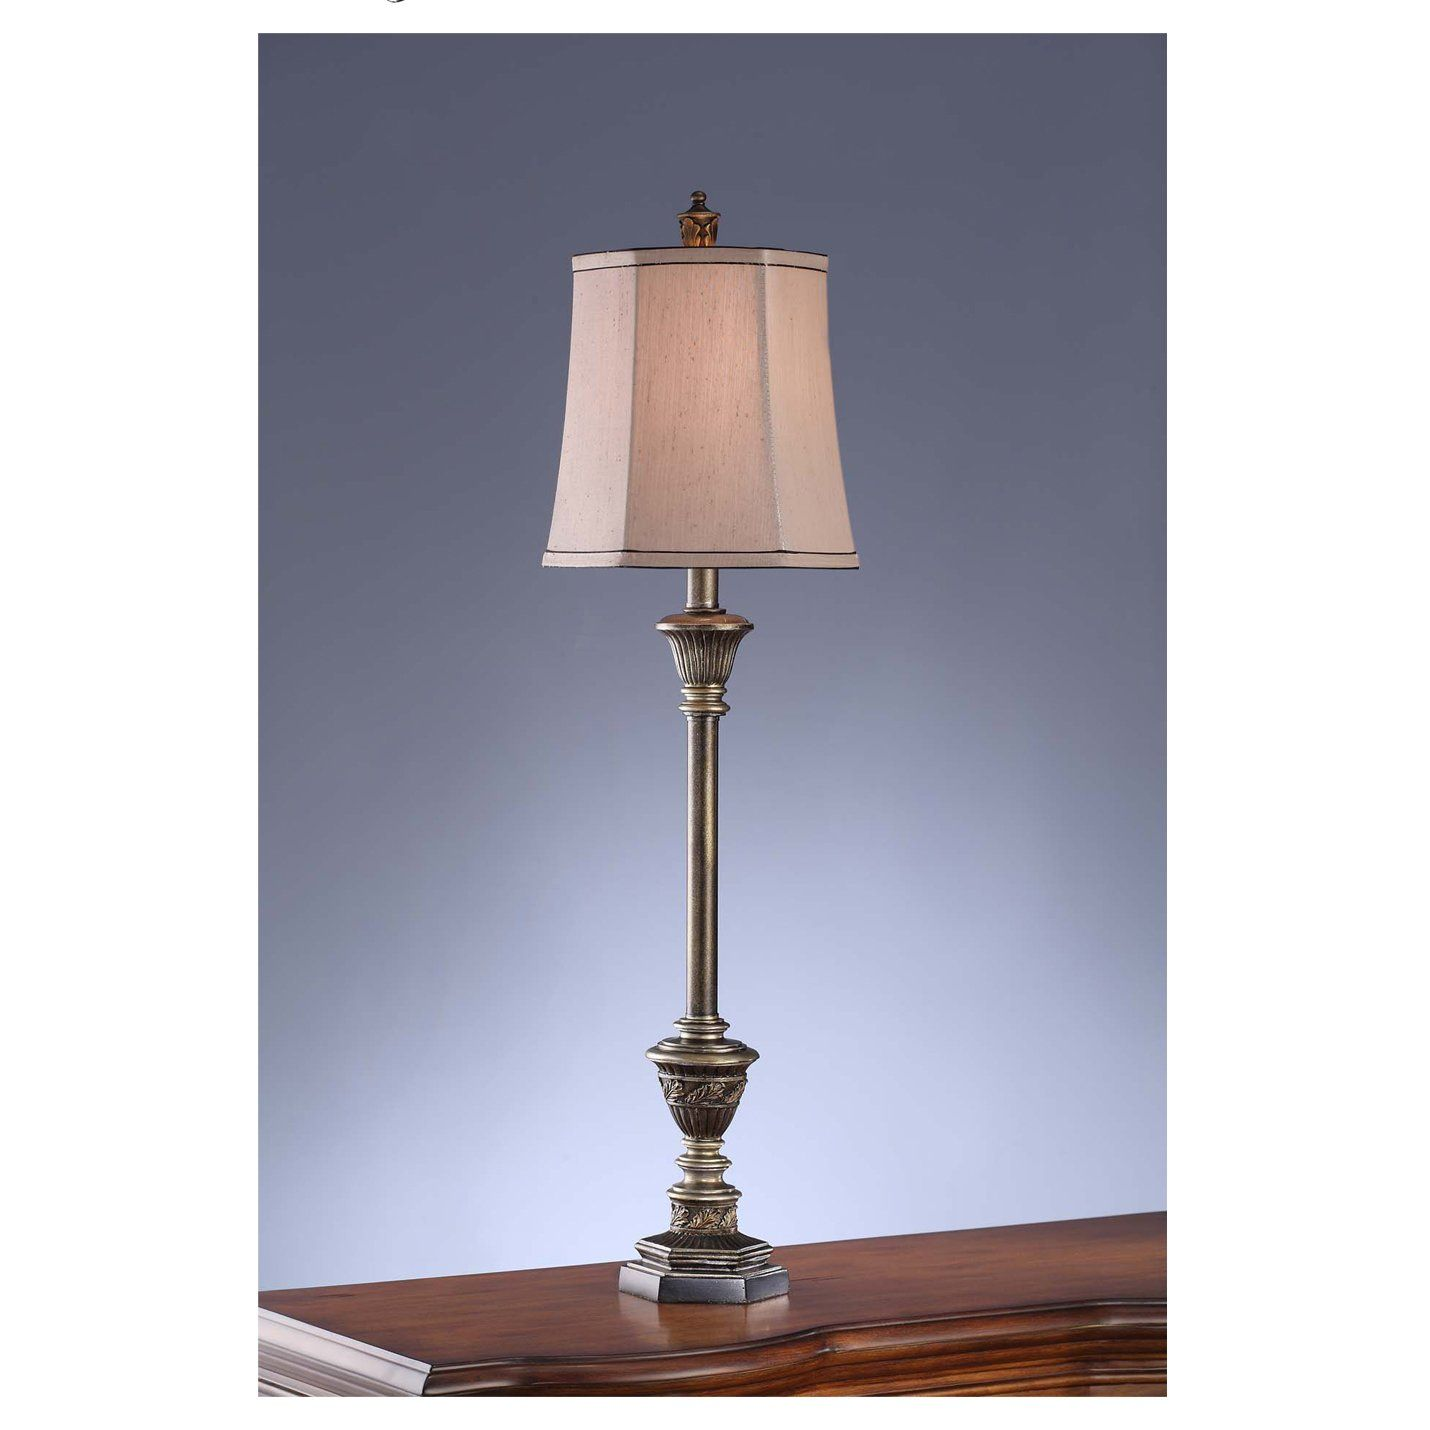 Light your home in traditional style with this beautiful